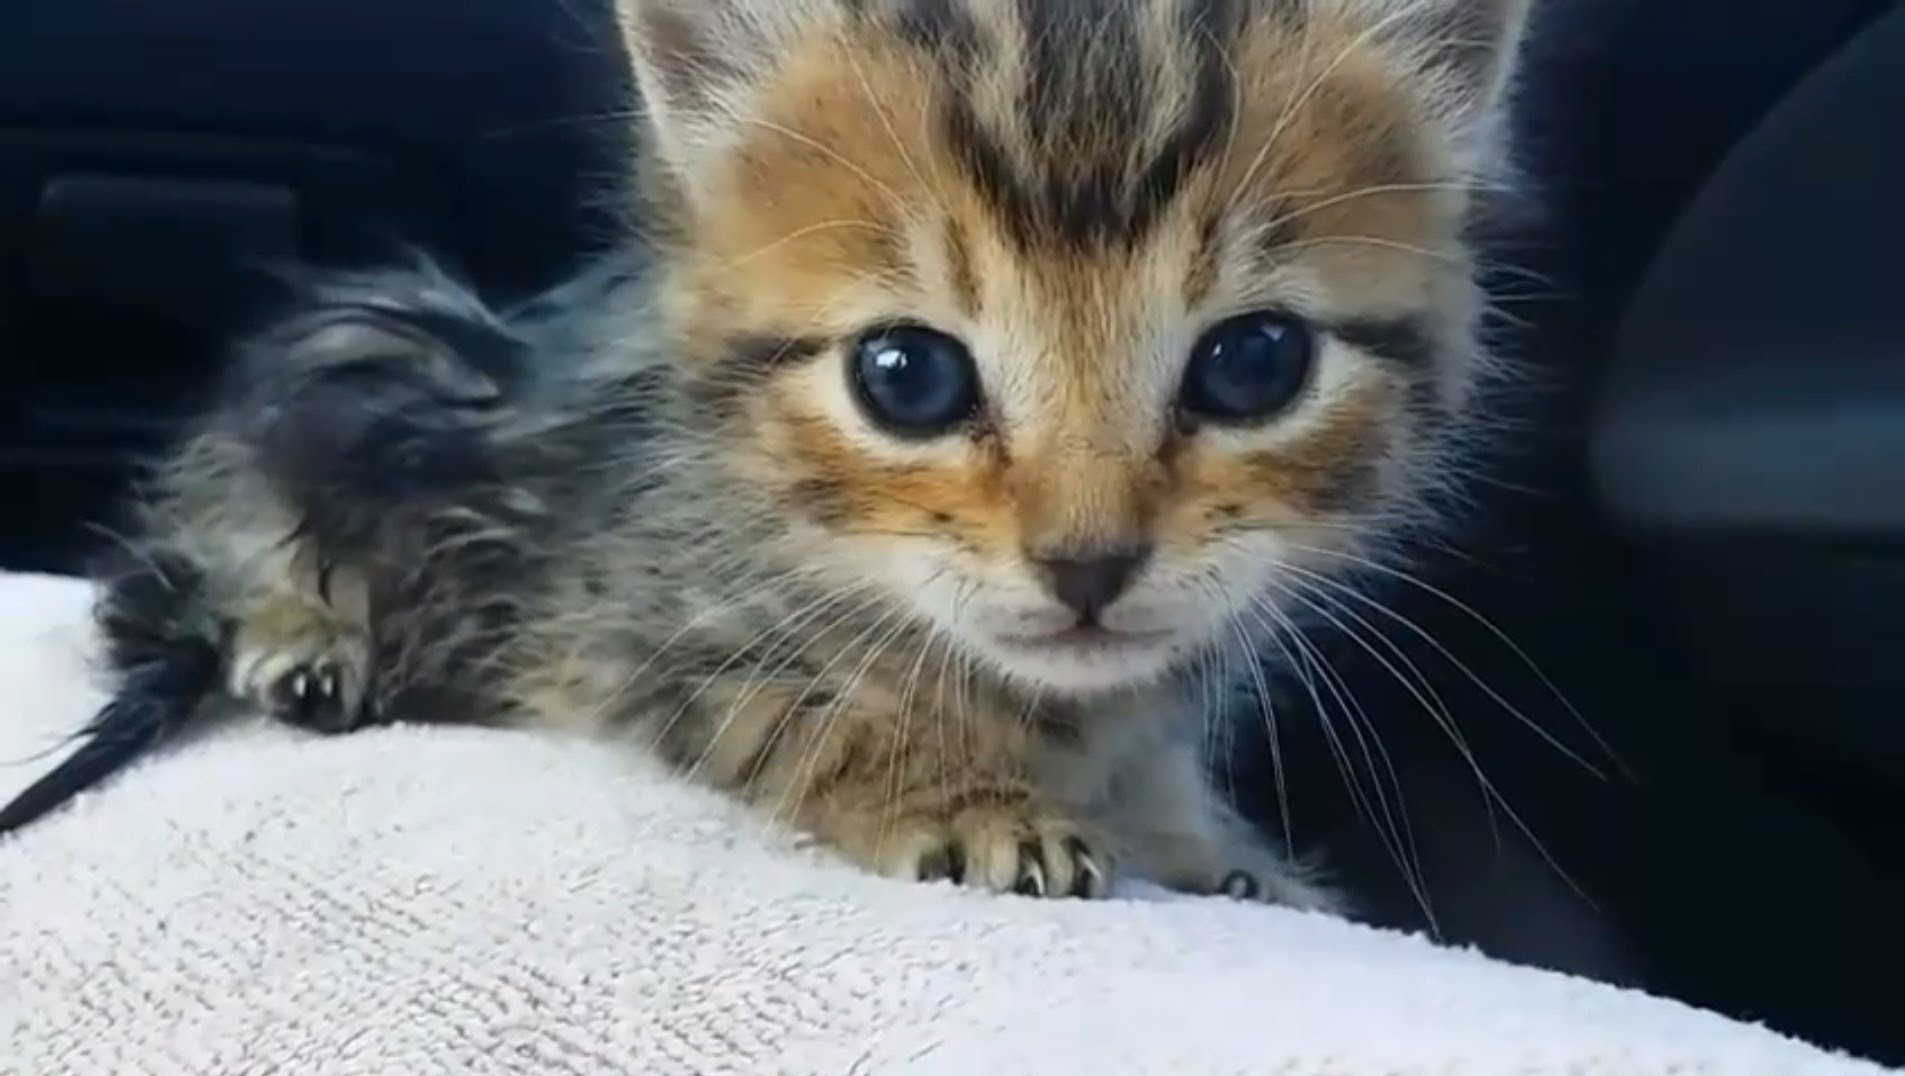 Saving an abandoned kitten